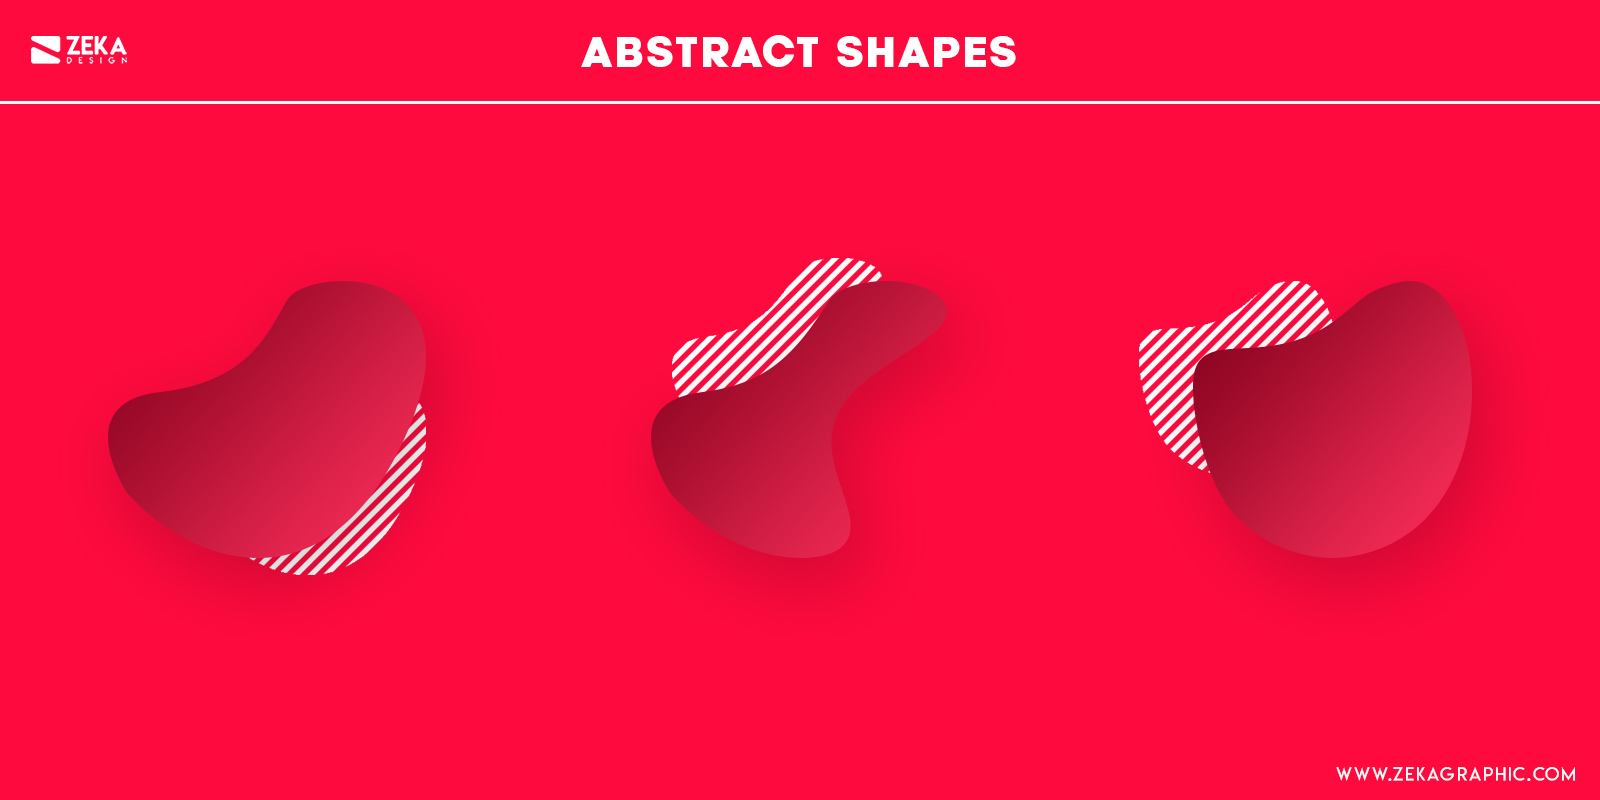 Abstract Shapes Psychology in Graphic Design